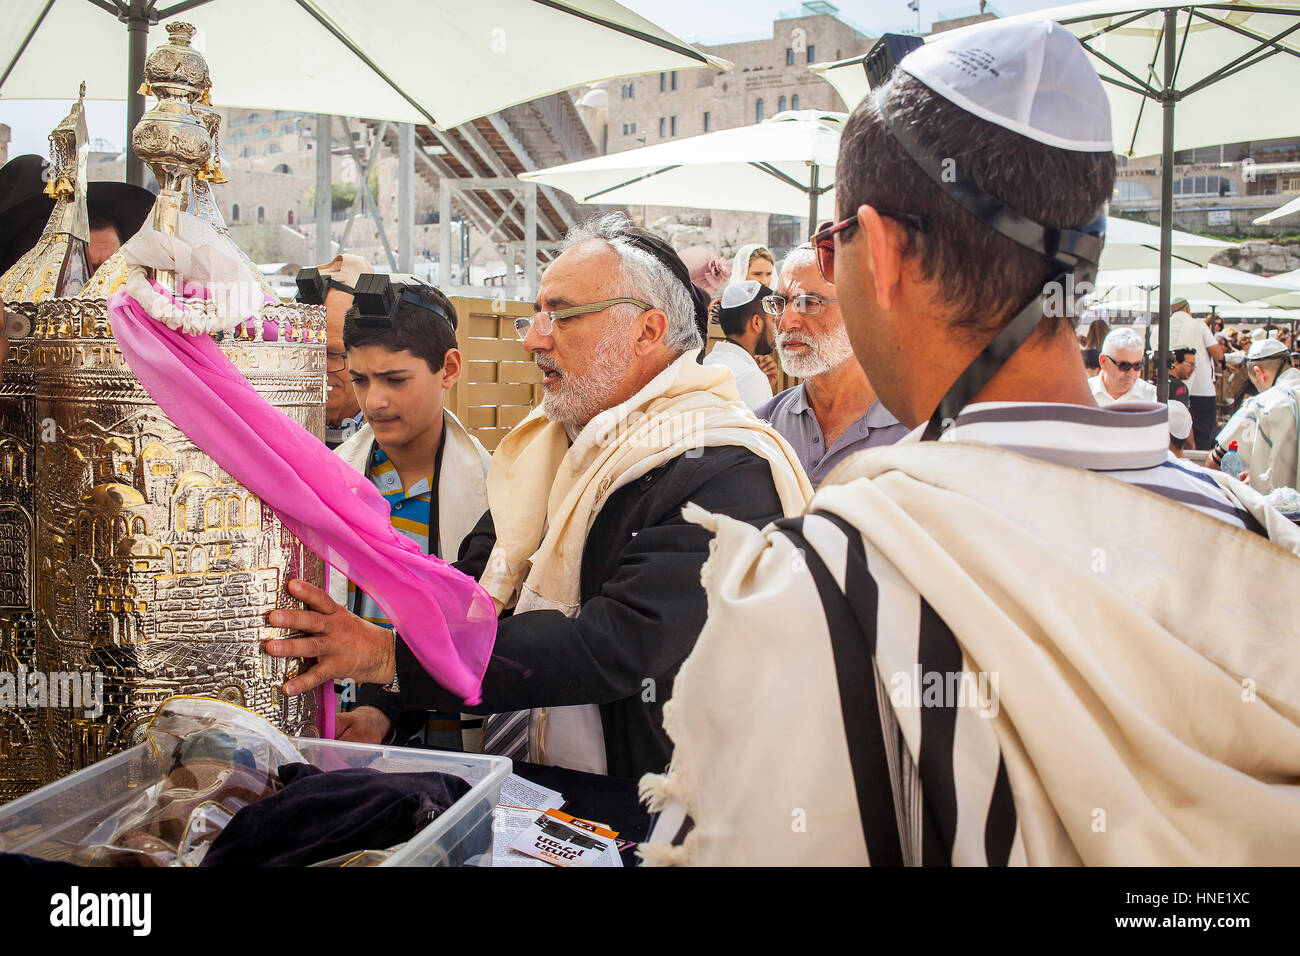 Wailing Wall, Western Wall, men, Bar Mitzvah ceremony, Jewish Quarter, Old City, Jerusalem, Israel. - Stock Image